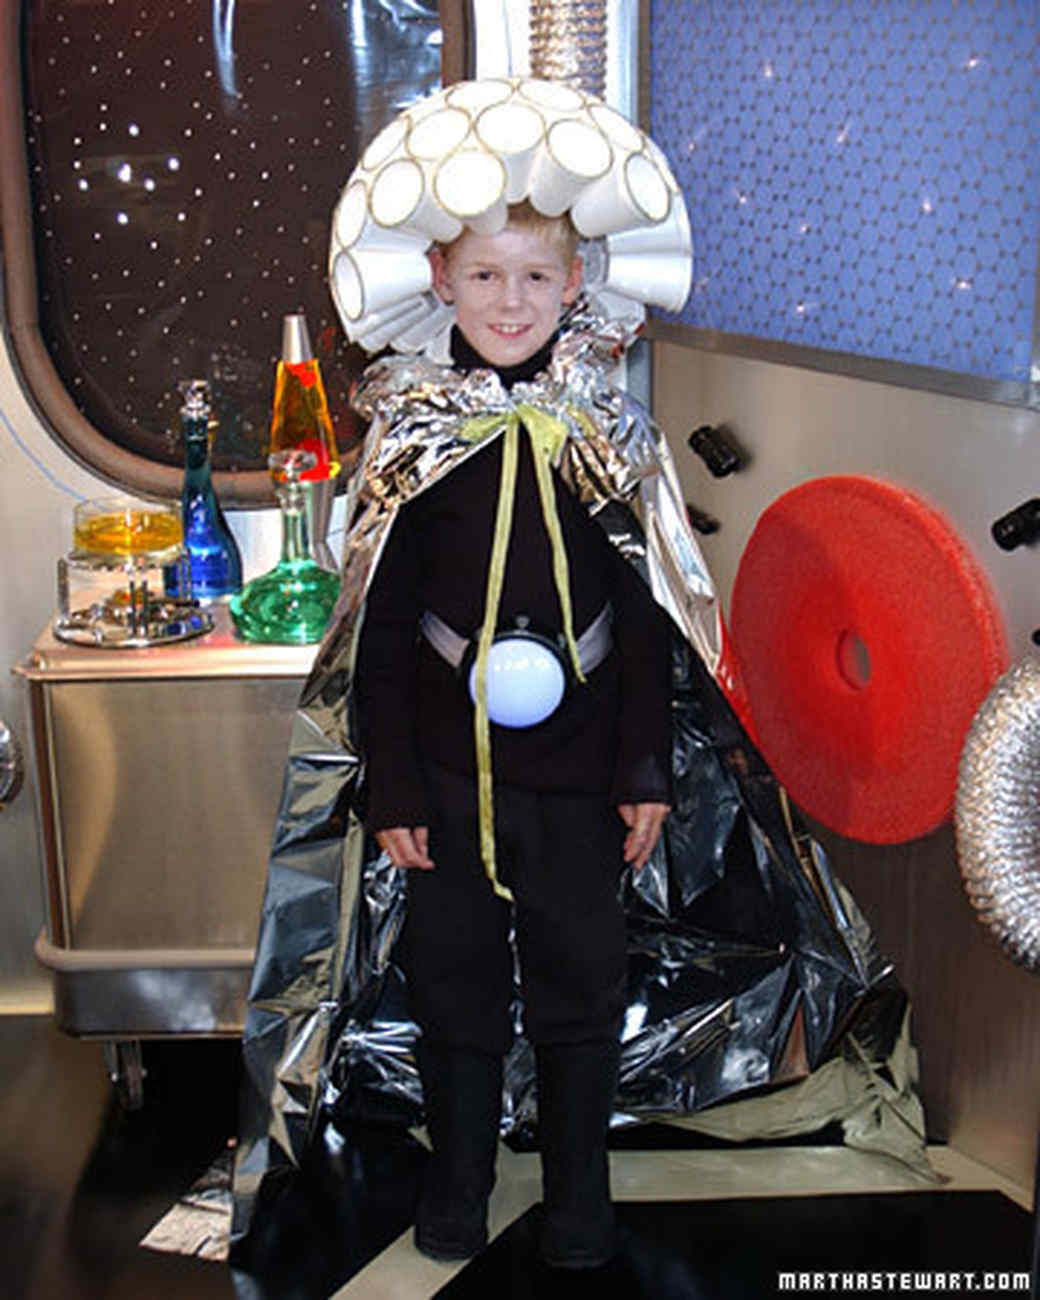 Space Costume with Jake